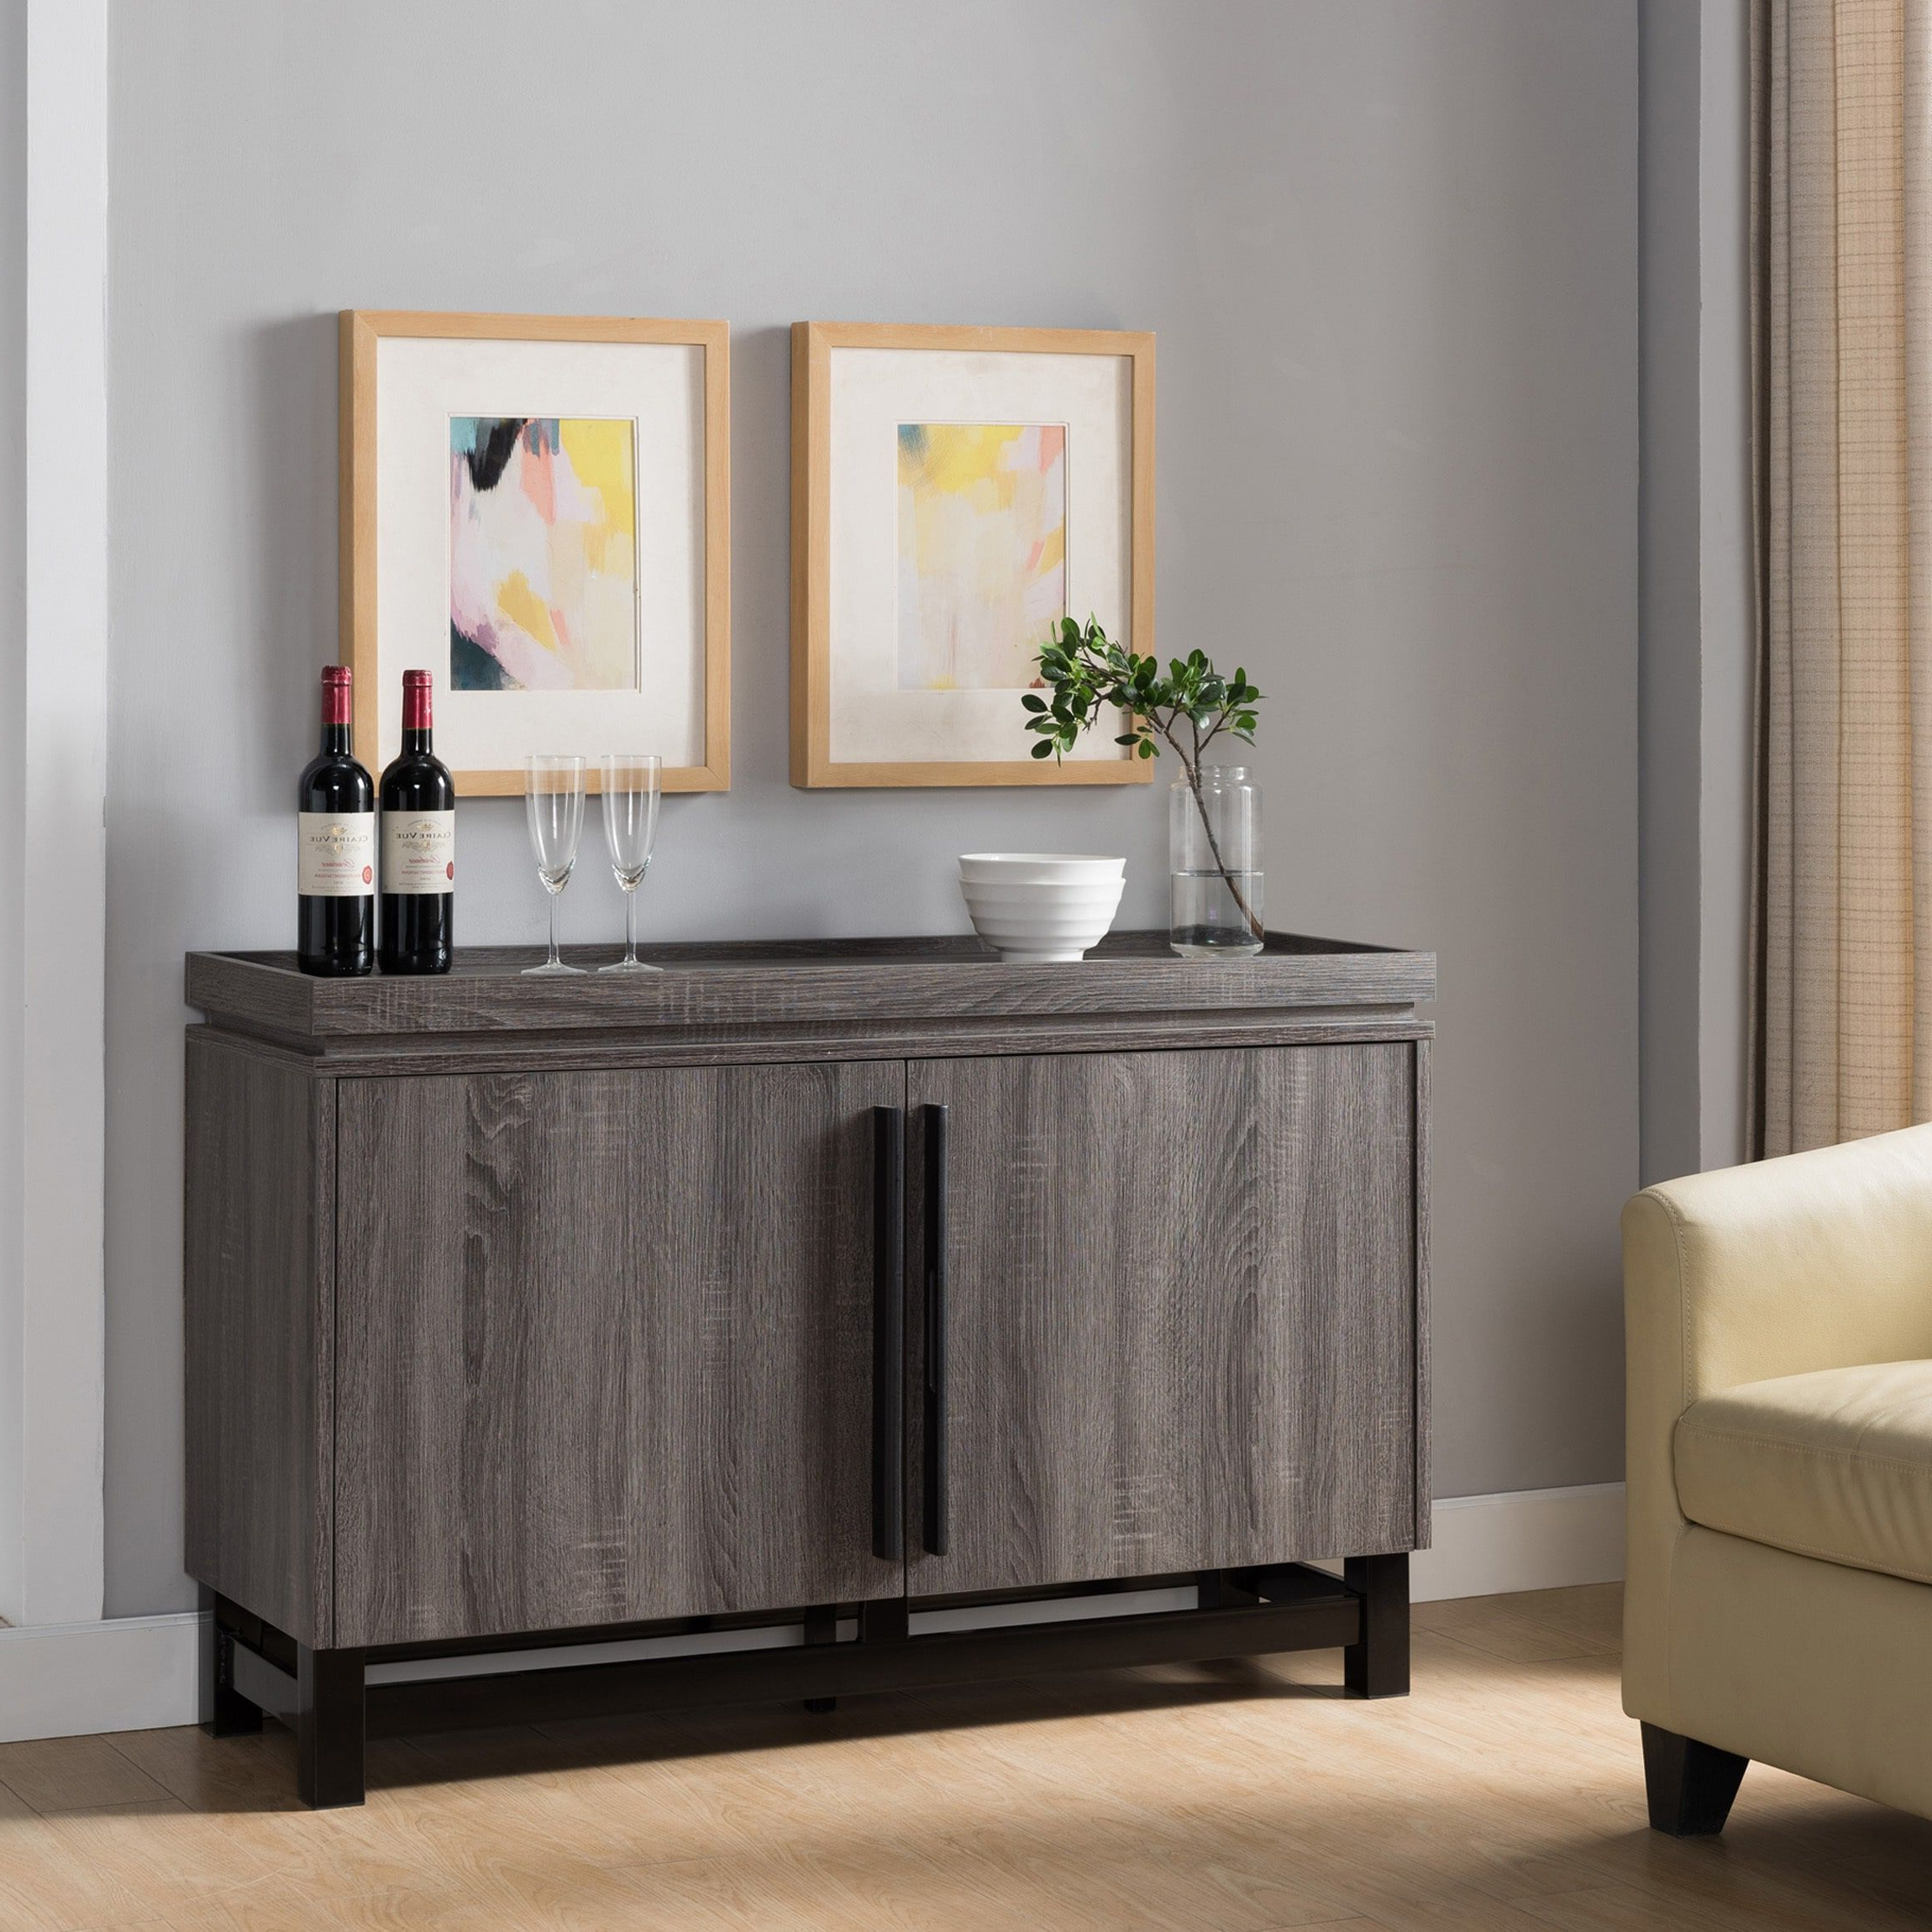 Furniture Of America Revine Modern Distressed Grey Two Tone Intended For Contemporary Distressed Grey Buffets (View 5 of 20)